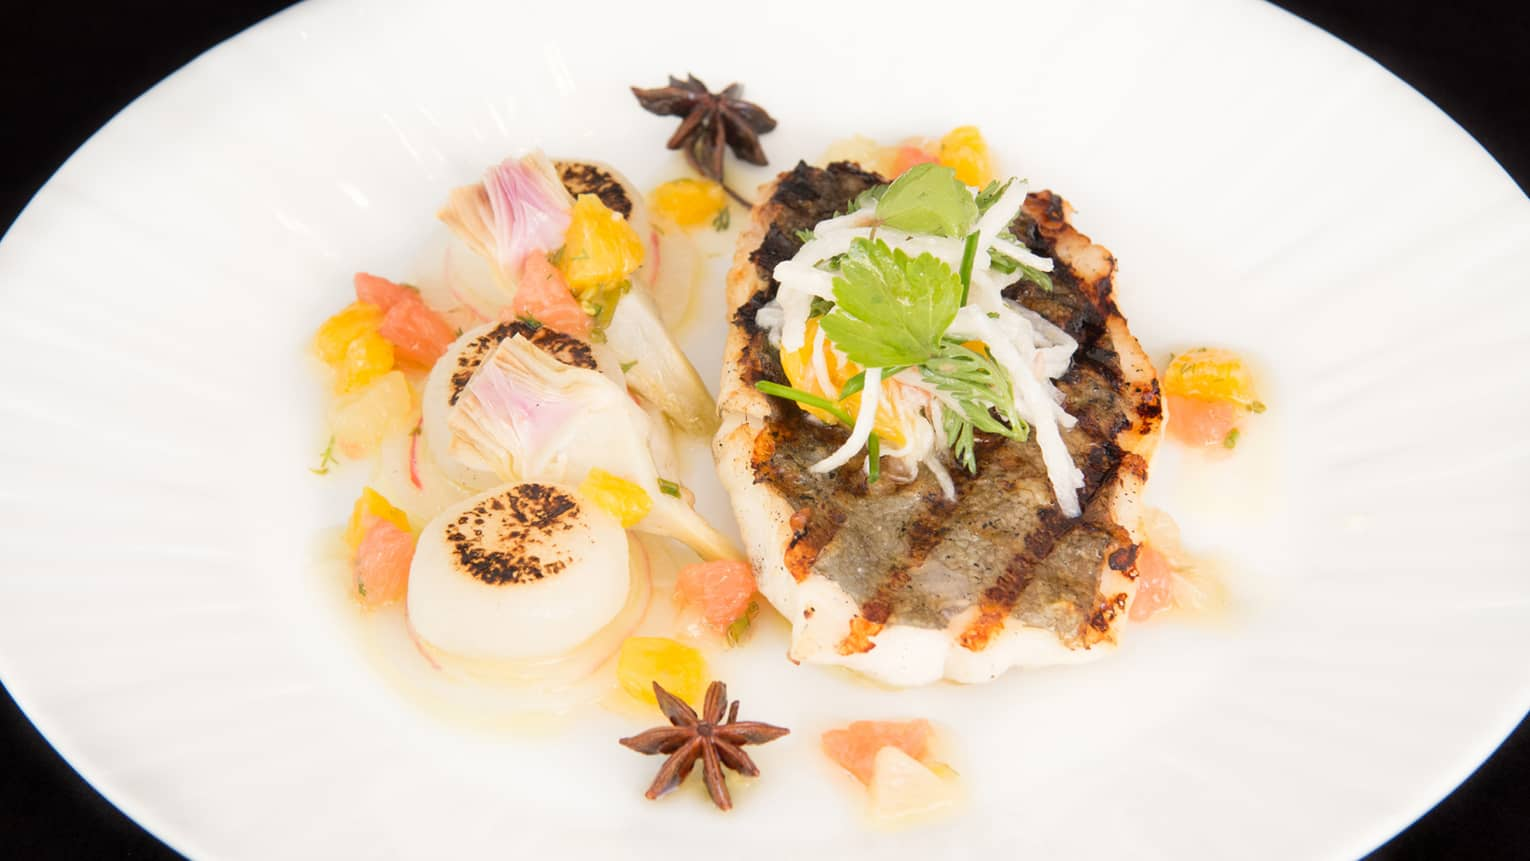 Grilled white fish filet and three seared scallops on plate with herbs, vegetable garnish